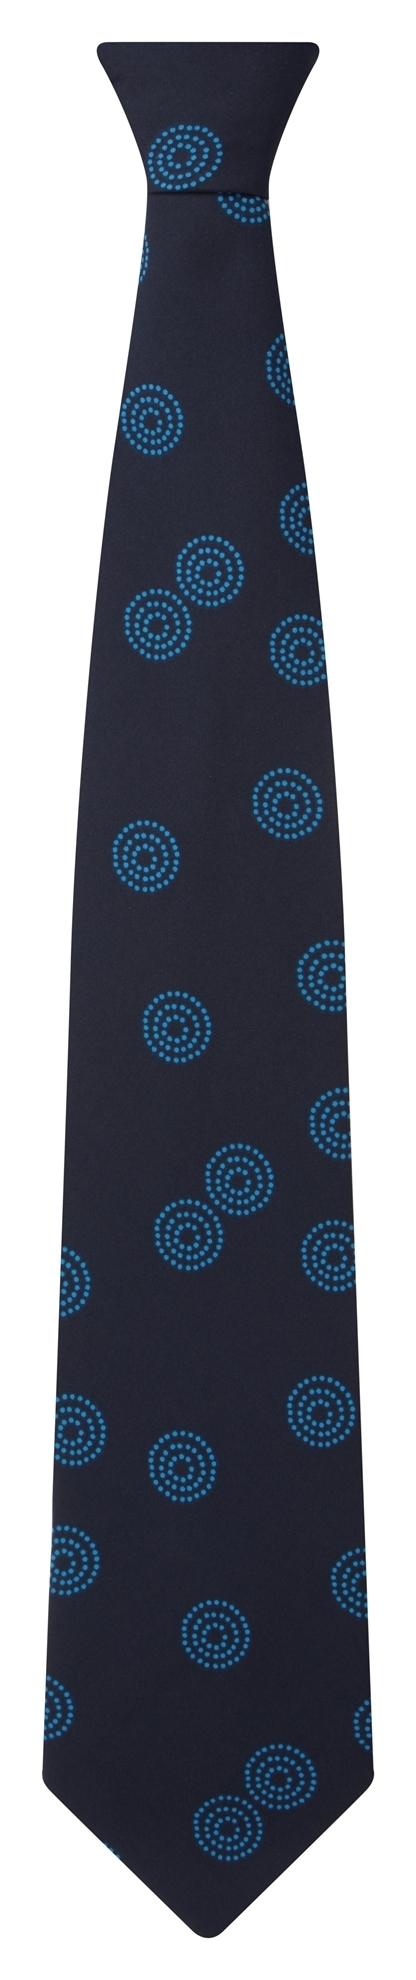 Picture of Print Tie - Navy/Blue Sienna Print